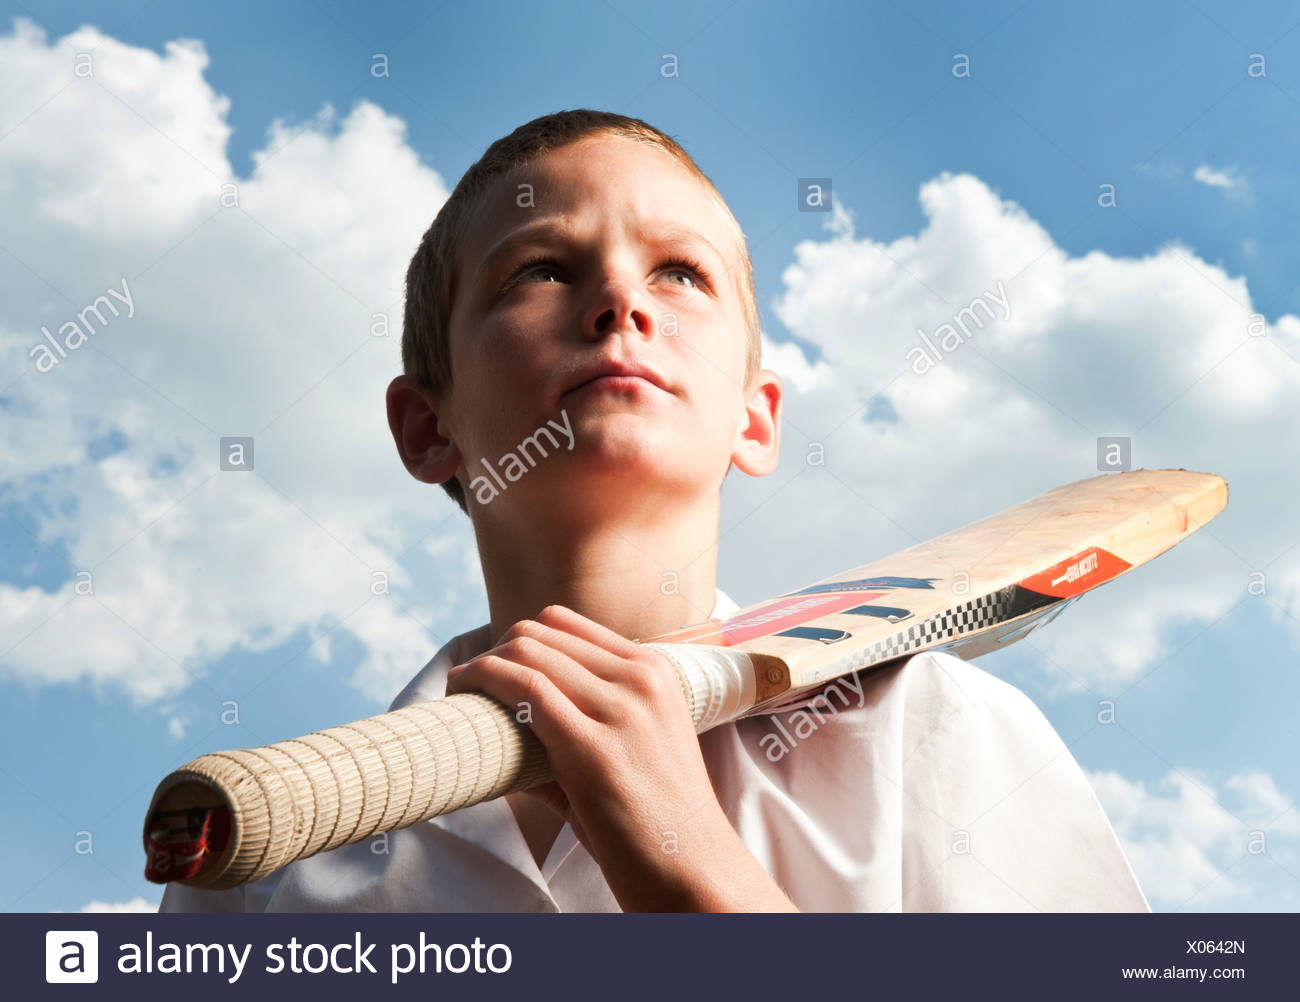 Boy holding cricket bat outdoors, Johannesburg, Gauteng Province, South Africa - Stock Image